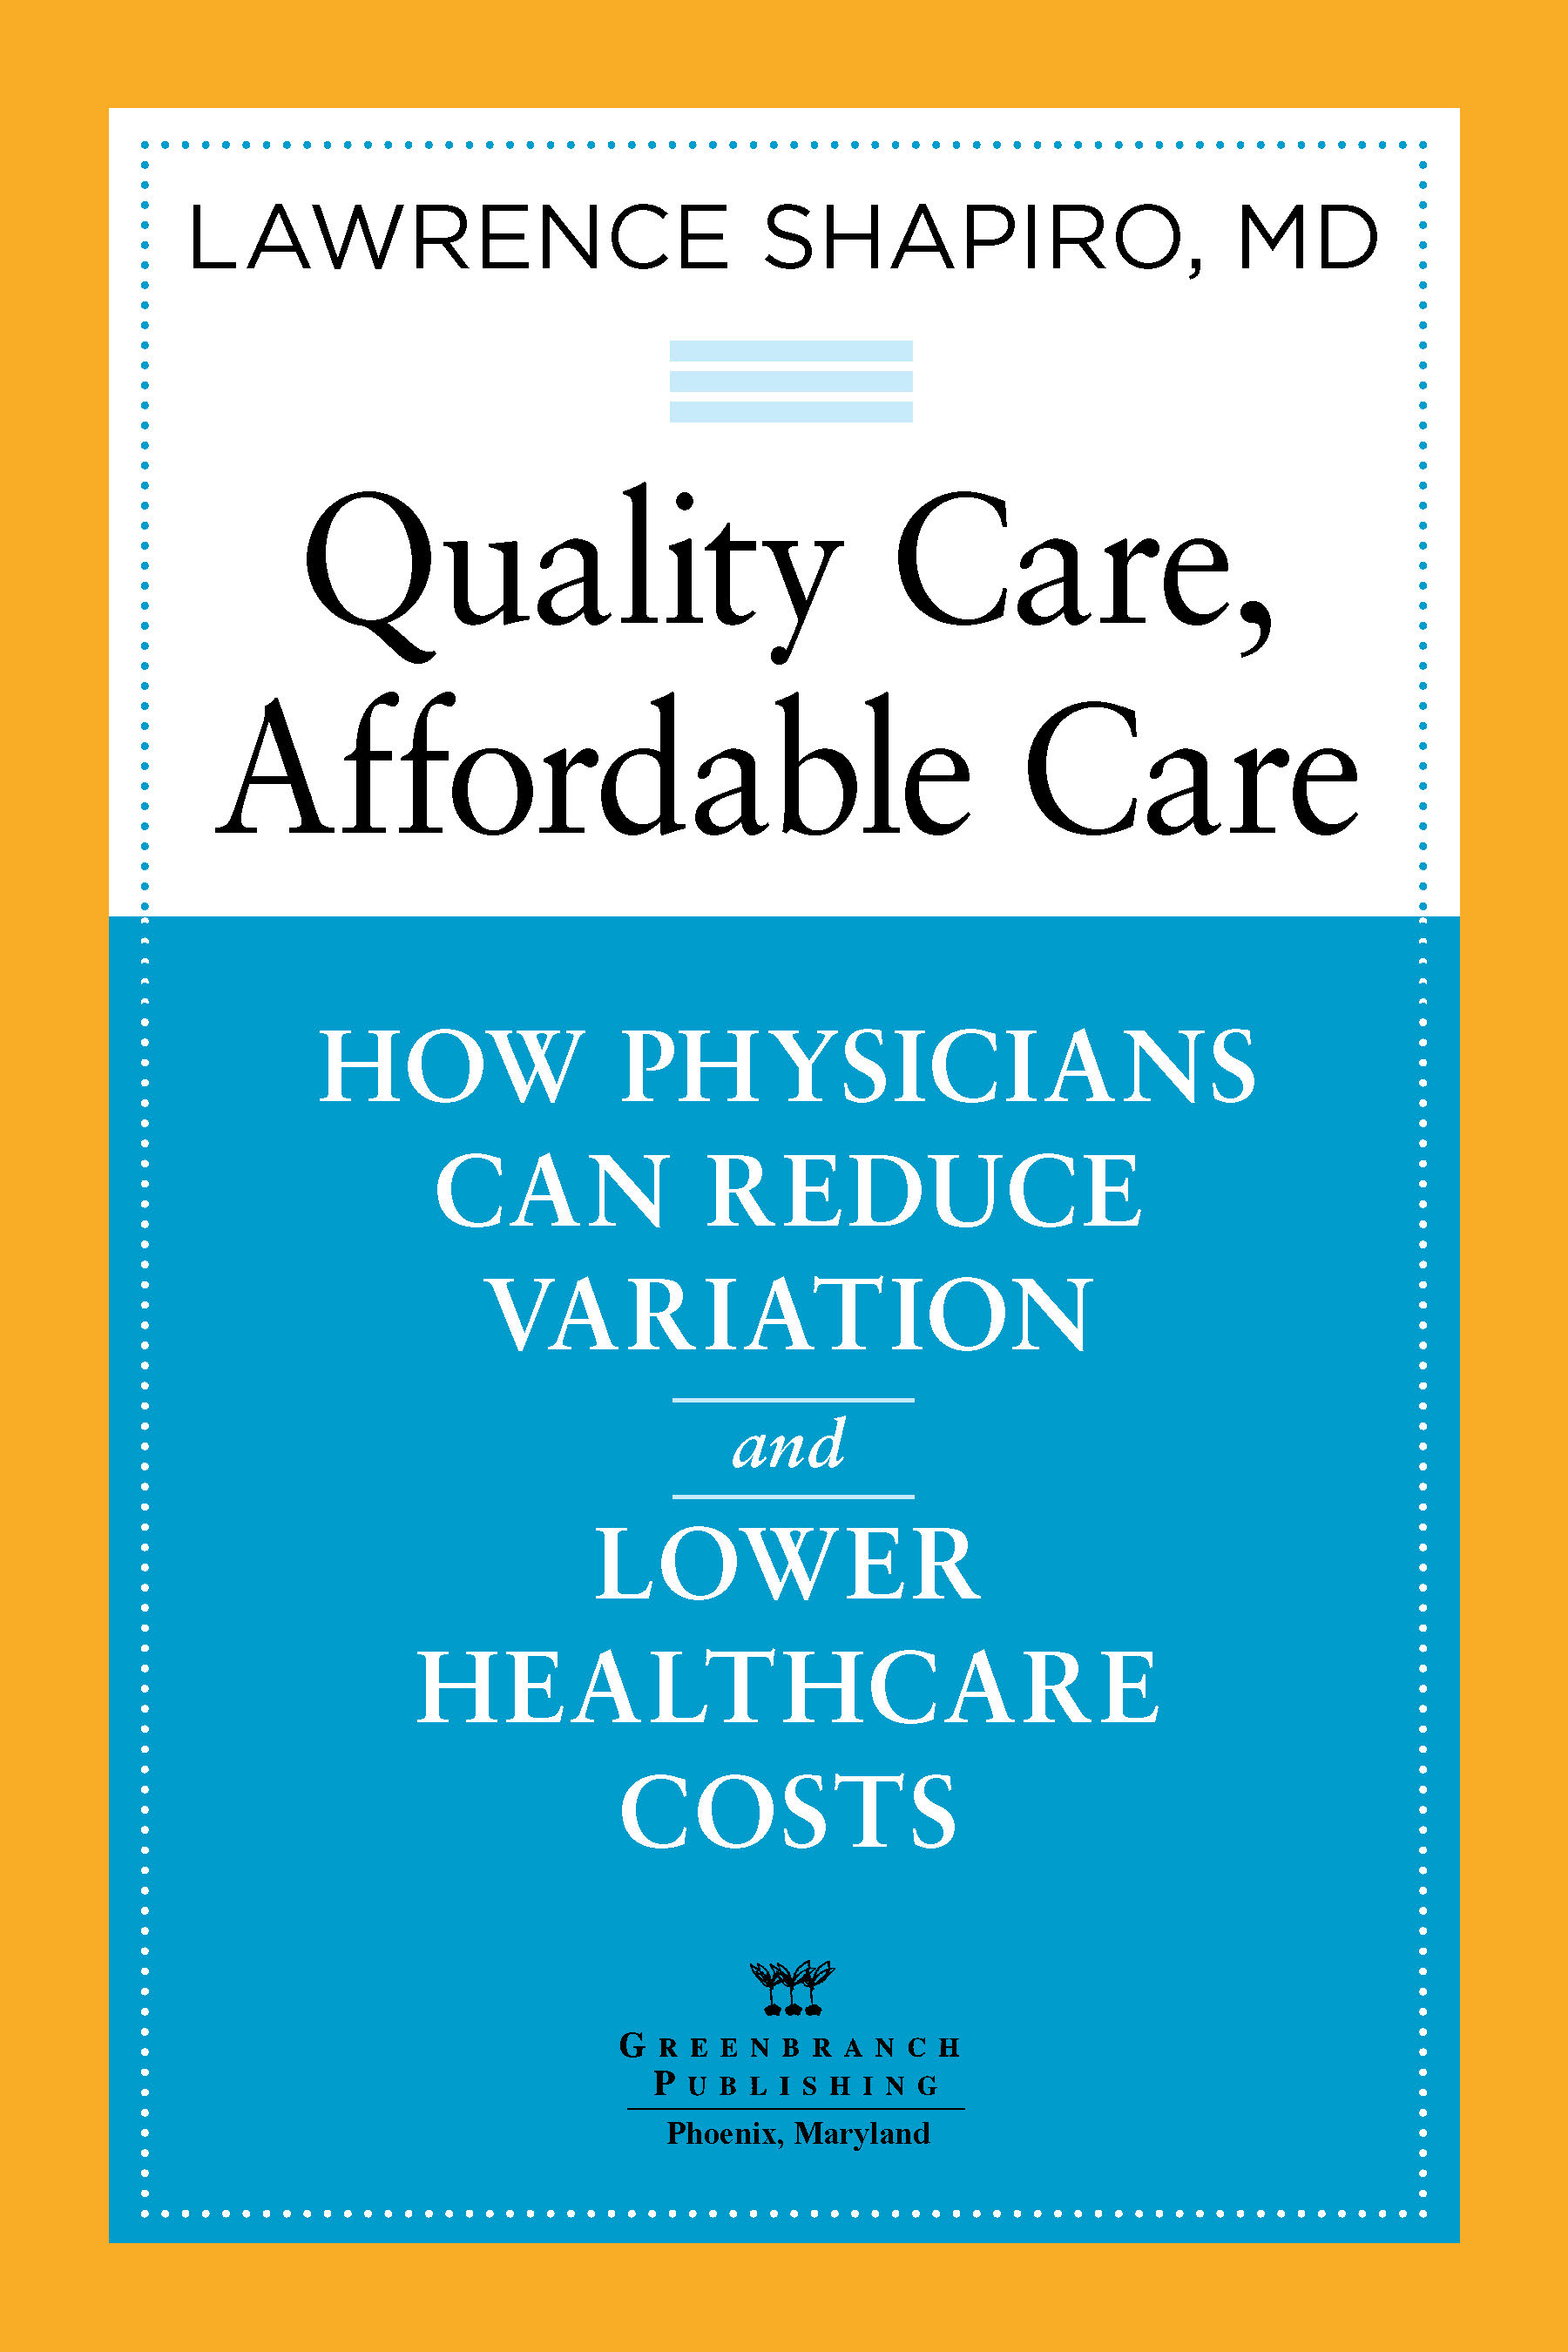 Quality Care, Affordable Care. Book Offers Keys to Putting Doctors in Control